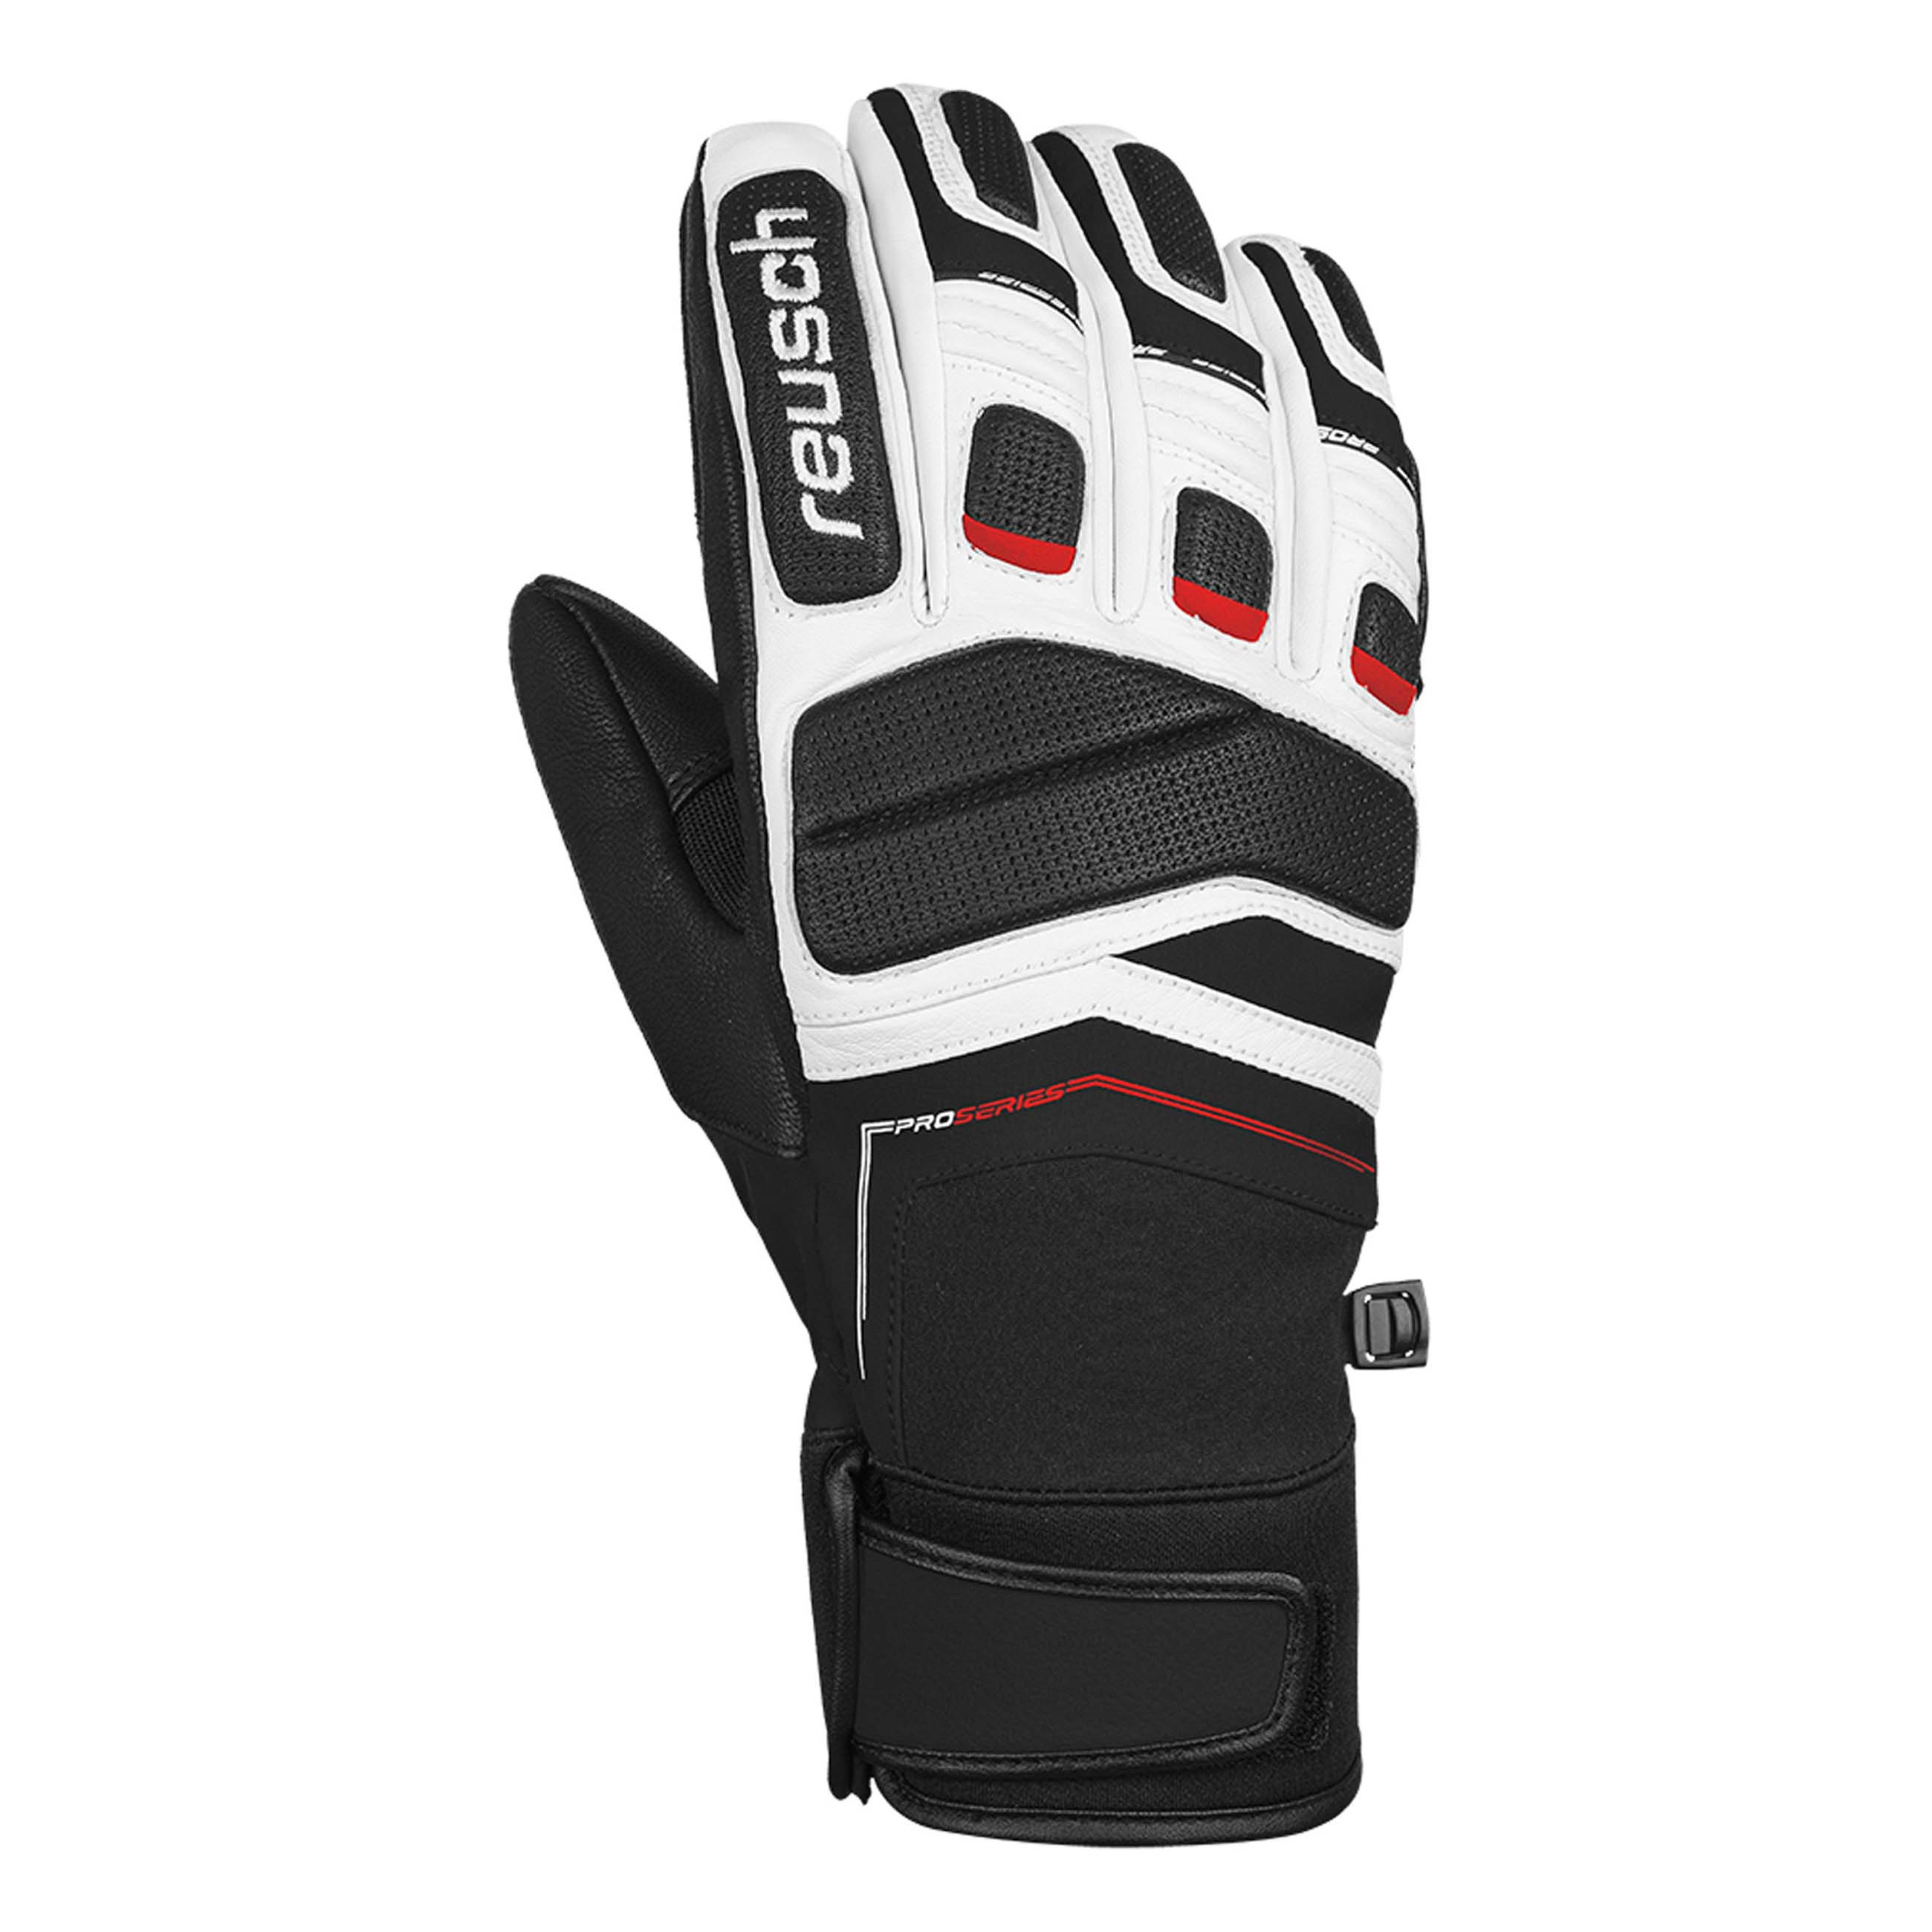 Reusch Profi Sl Black Snow Ski Glove Black White Fire Red Ebay